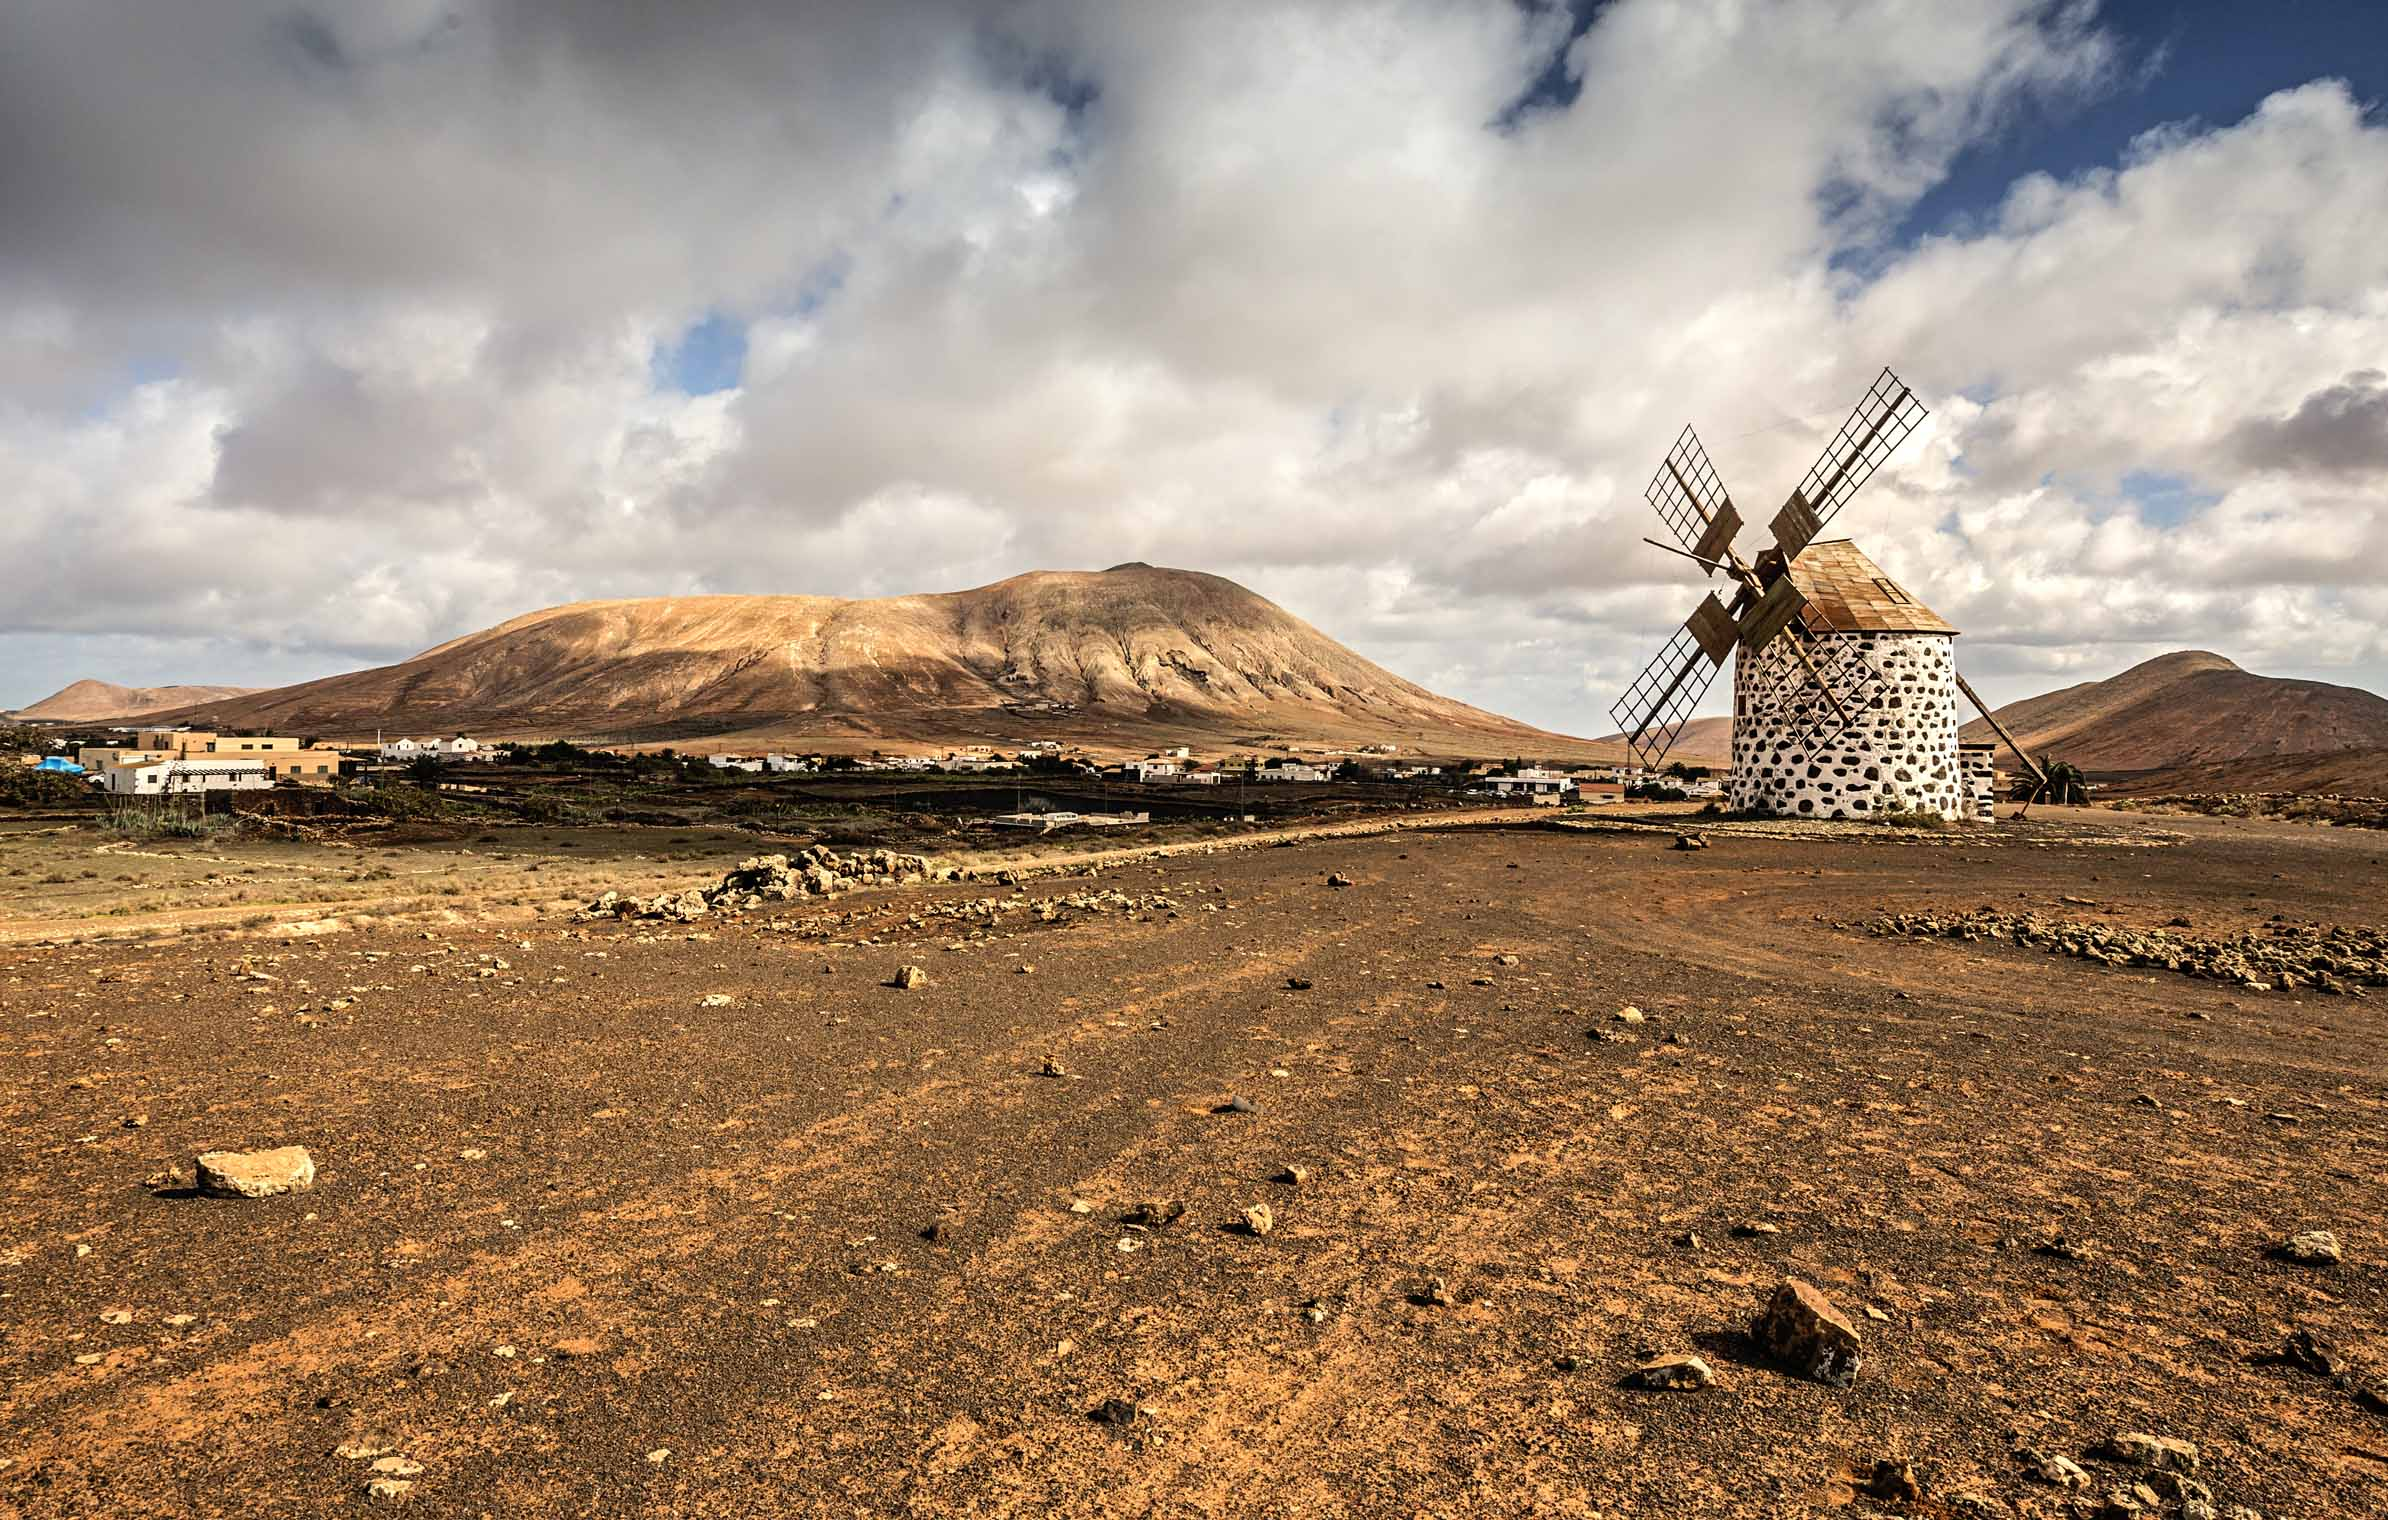 places_fuerteventura_ground_sky_windmill_windmuehle_heat